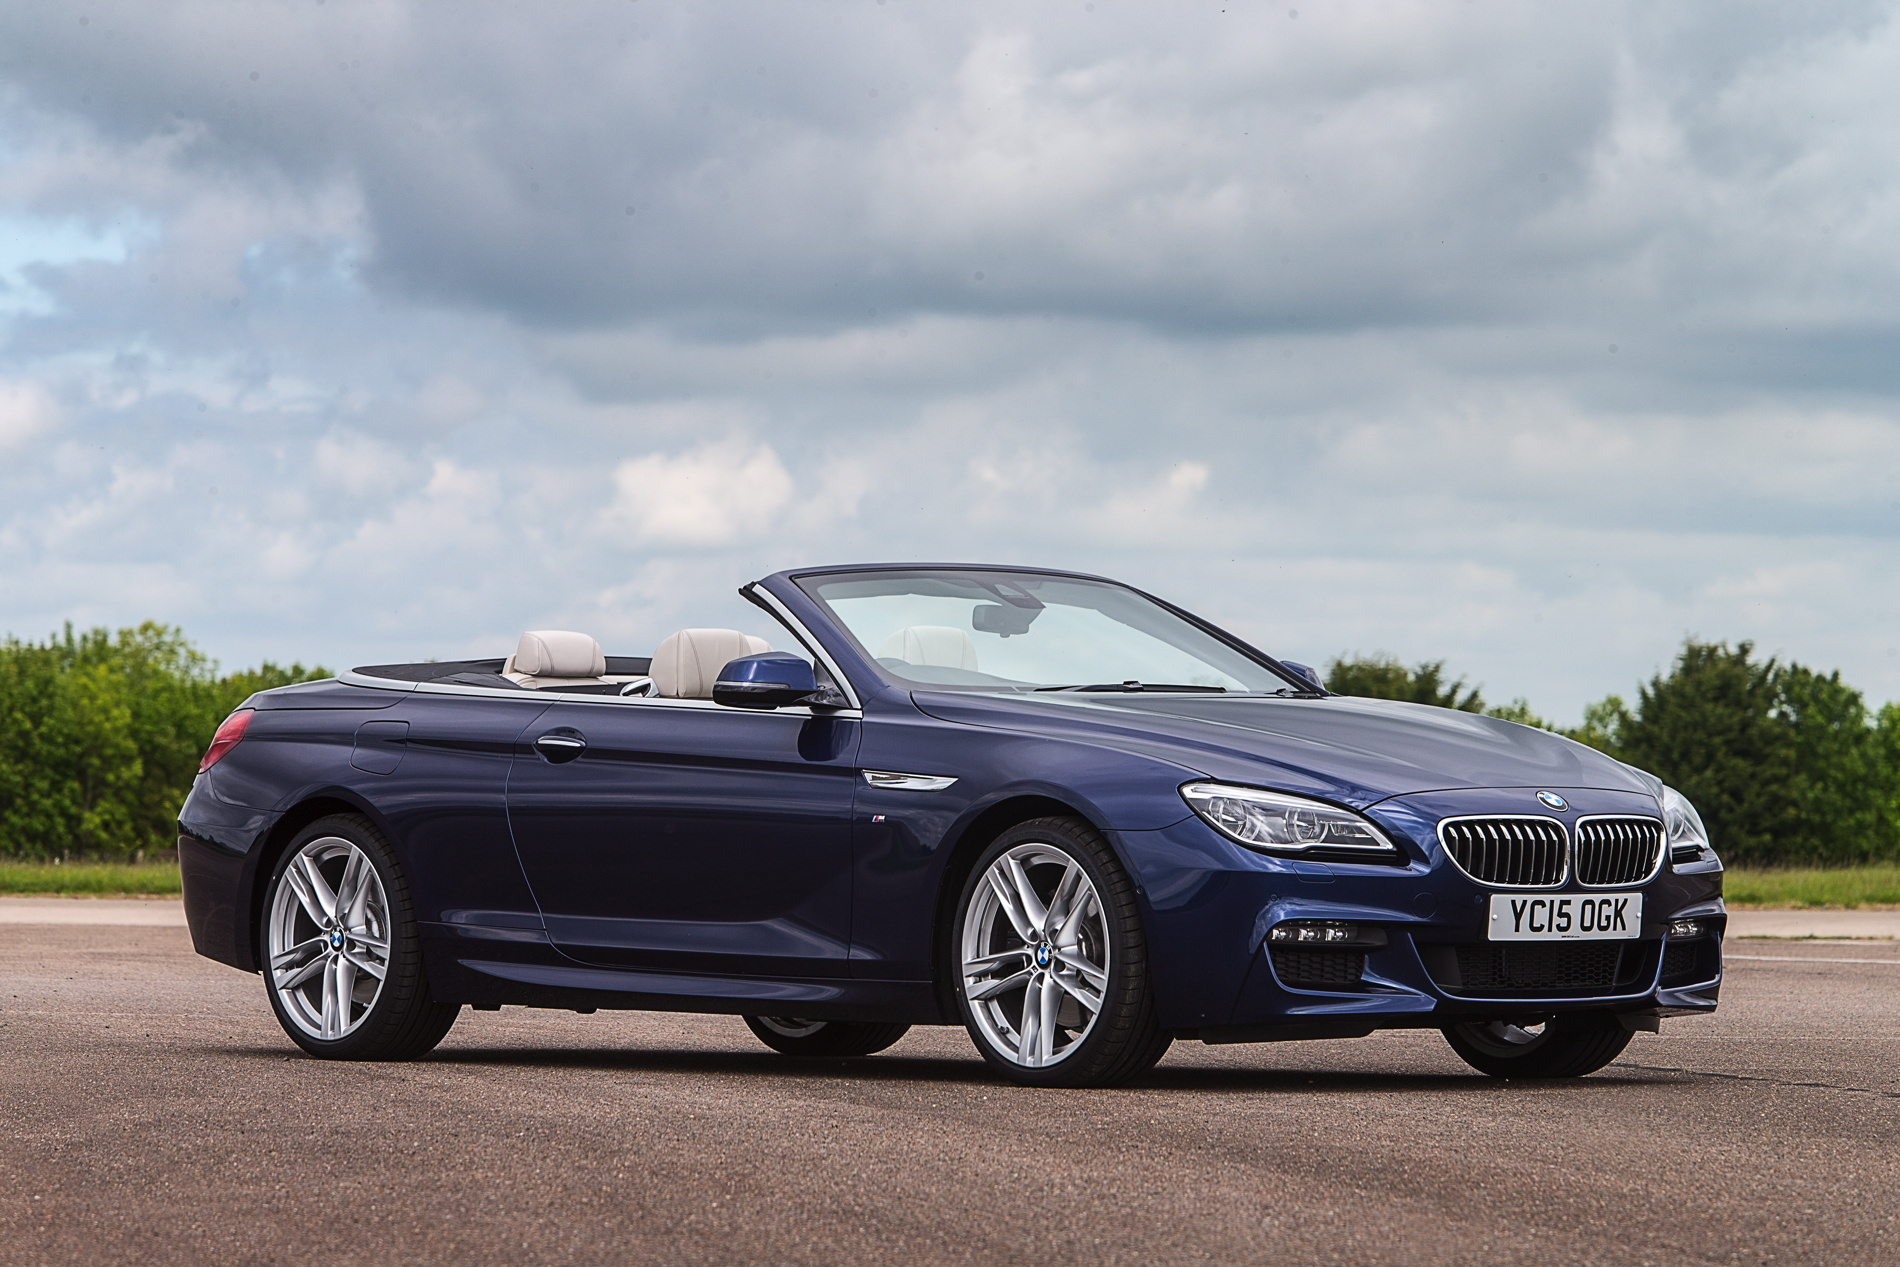 Mini F56 Facelift >> 2015 BMW 6 Series Coupe, Convertible, Gran Coupe - New Photos